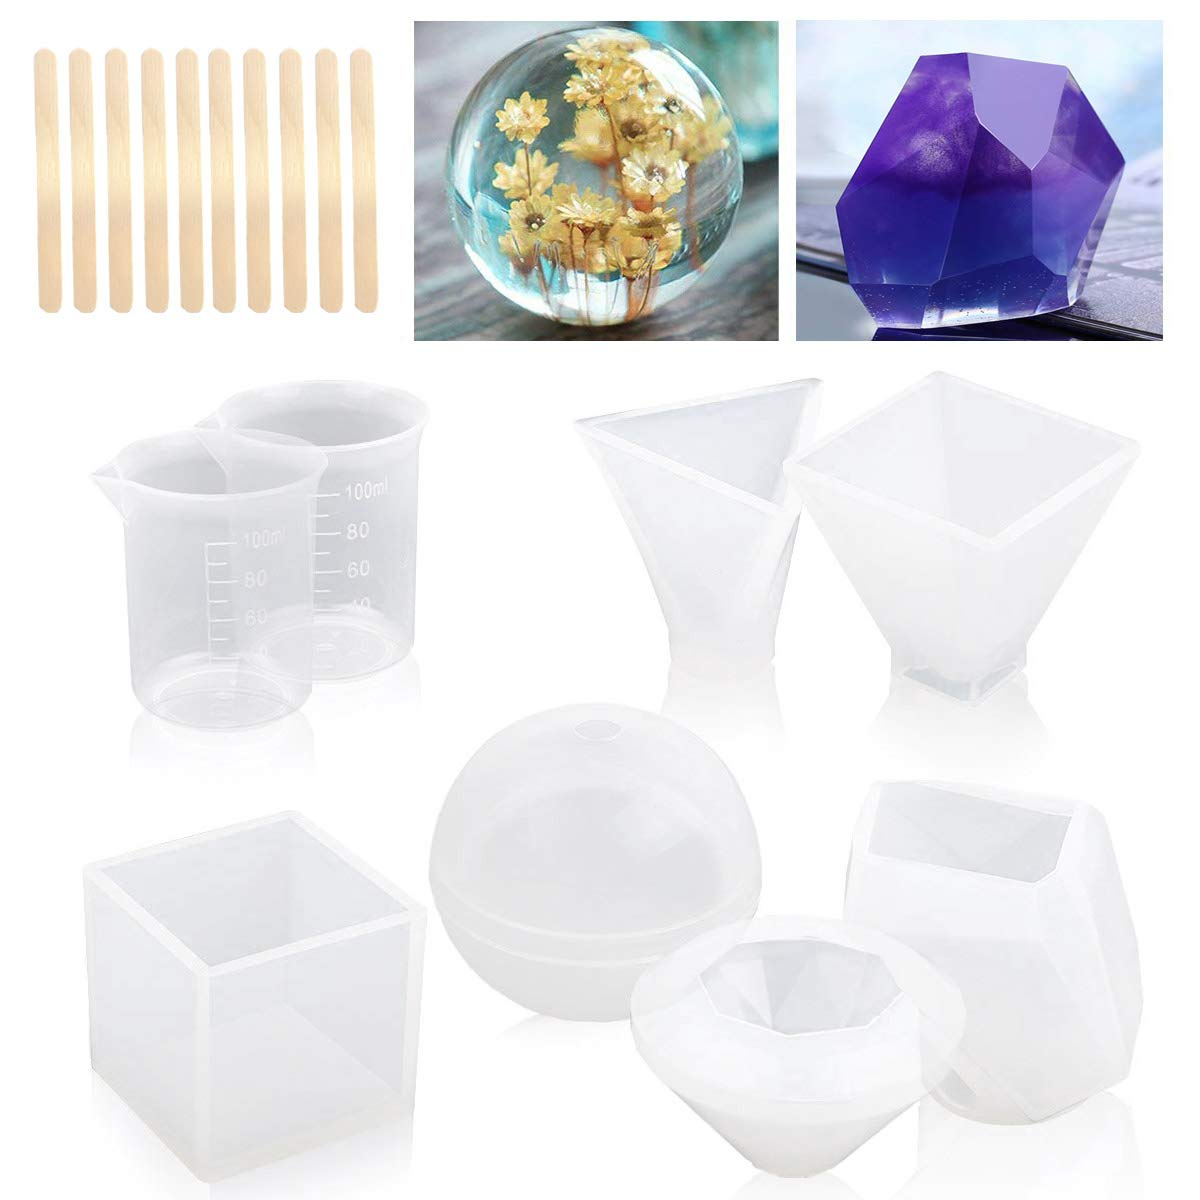 MSDADA Resin Casting Molds with Manual,Jewelry Making DIY Craft, 6 Pack,Including Spherical, Cubic, Diamond, Triangular Pyramid,Pyramid,Stone Shape Mold, Measurement Cups,Wood Sticks Master-Ed